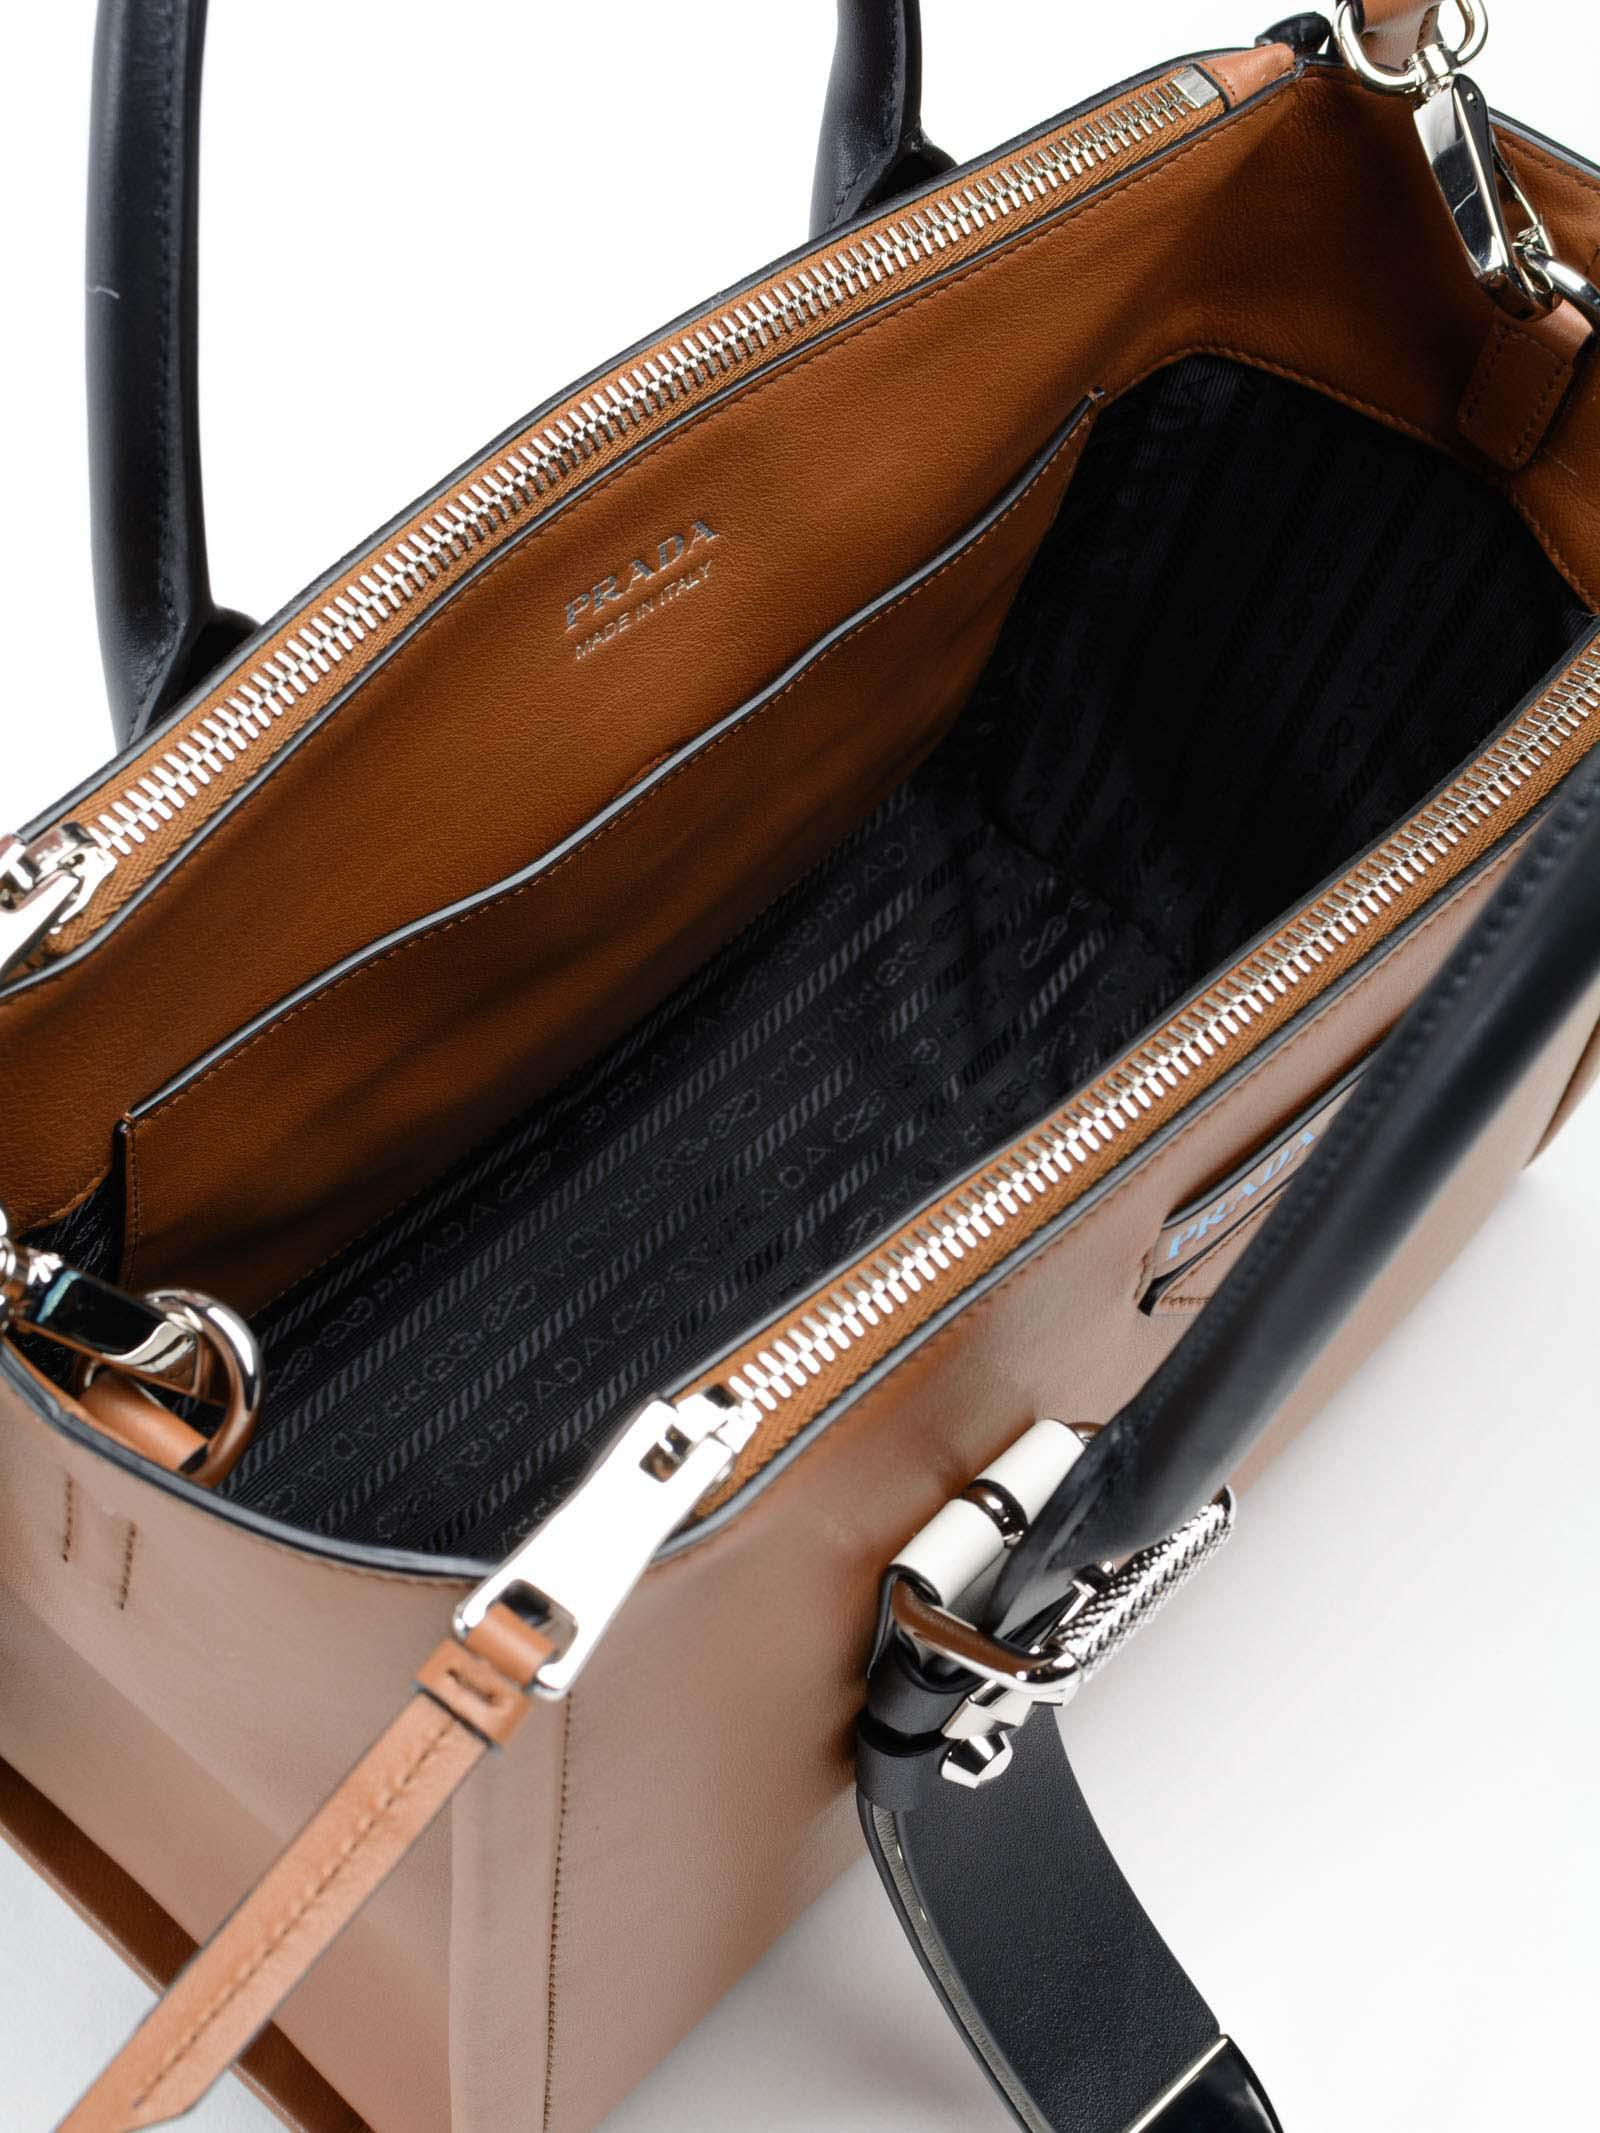 f3b8e1b36bbc34 Prada Grace Lux Handbag in Brown - Lyst